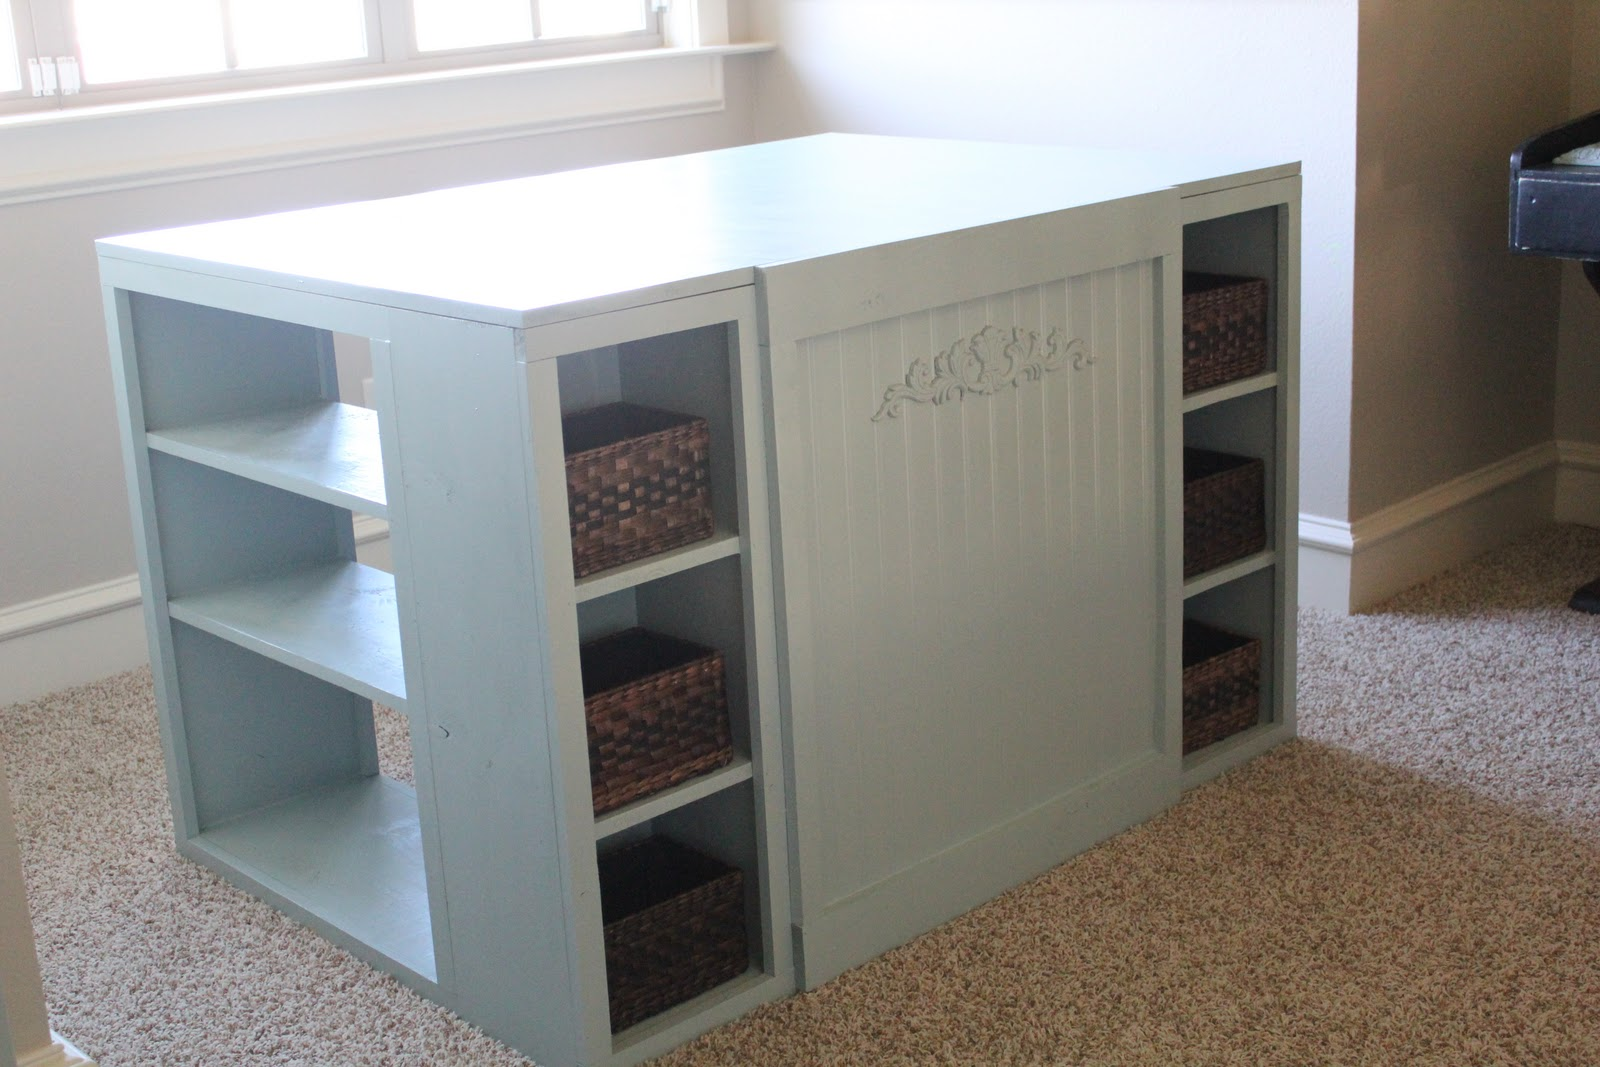 craft room ideas bedford collection. Craft Room Inspiration Ideas Bedford Collection